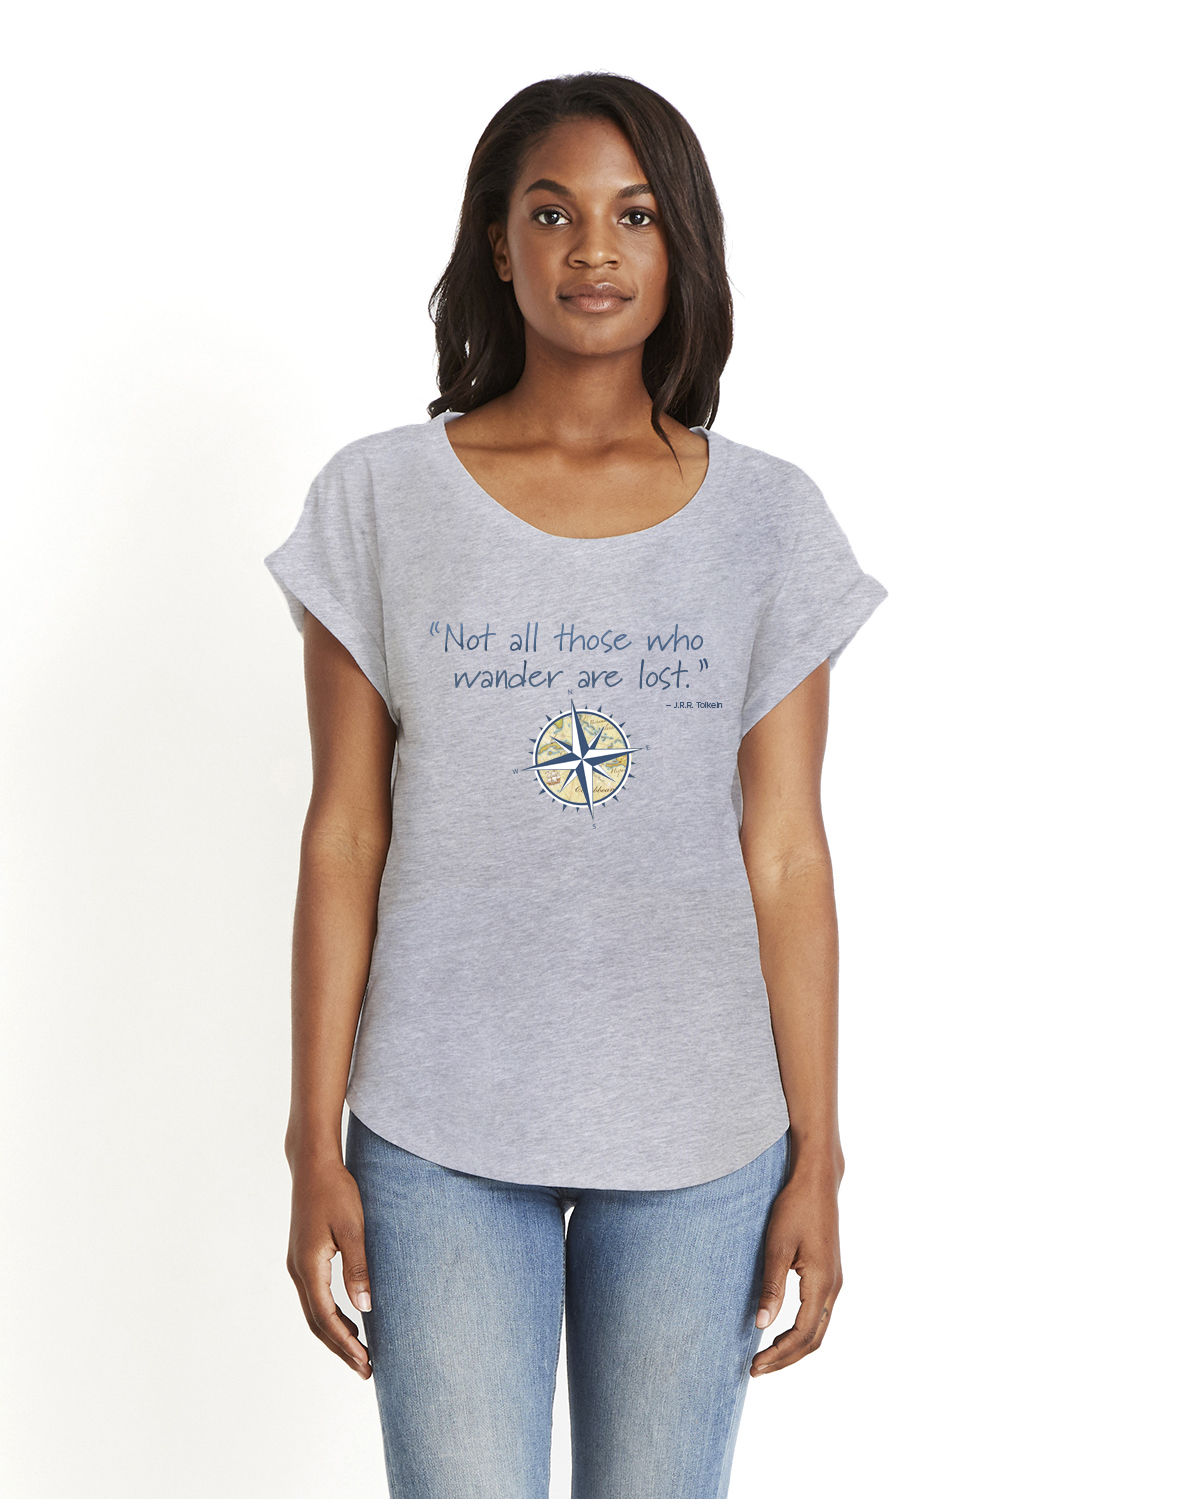 Not all those who wander are lost women's gray Dolman sleeve t-shirt